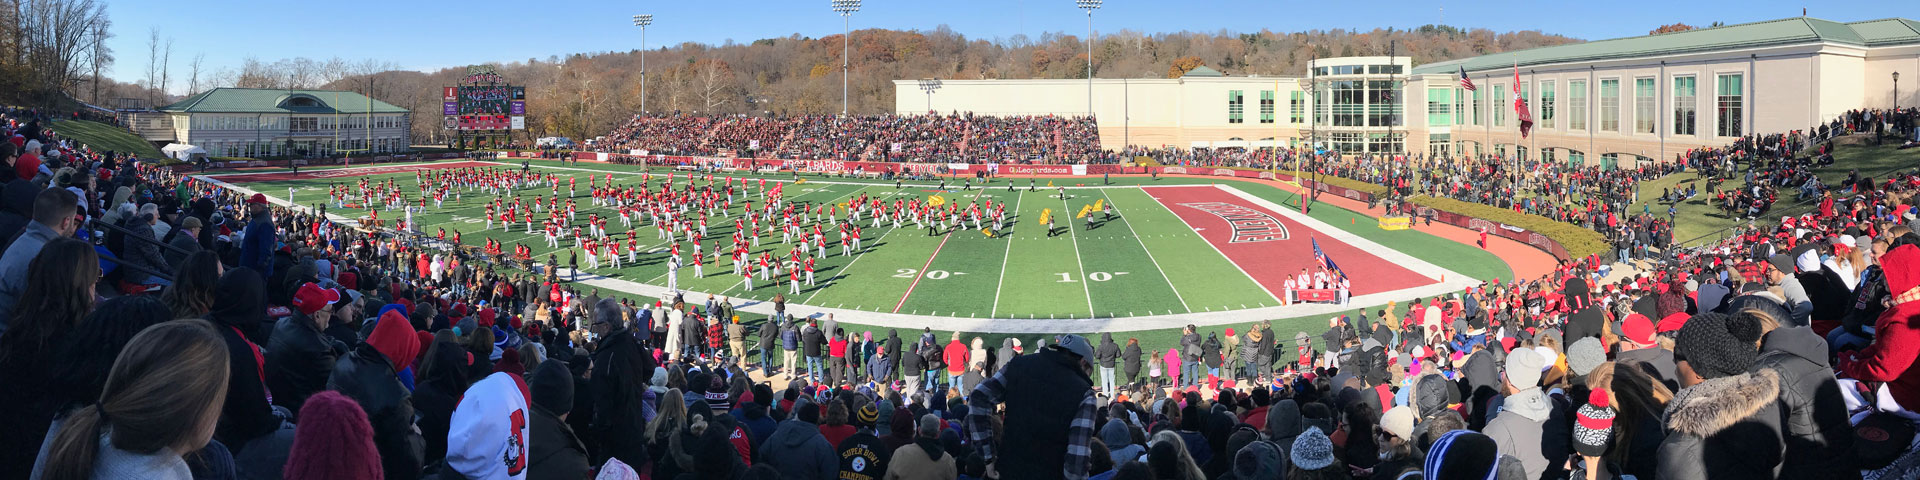 A panoramic view of a football stadium packed with people. A band in red, black, and white uniforms performs on the field.